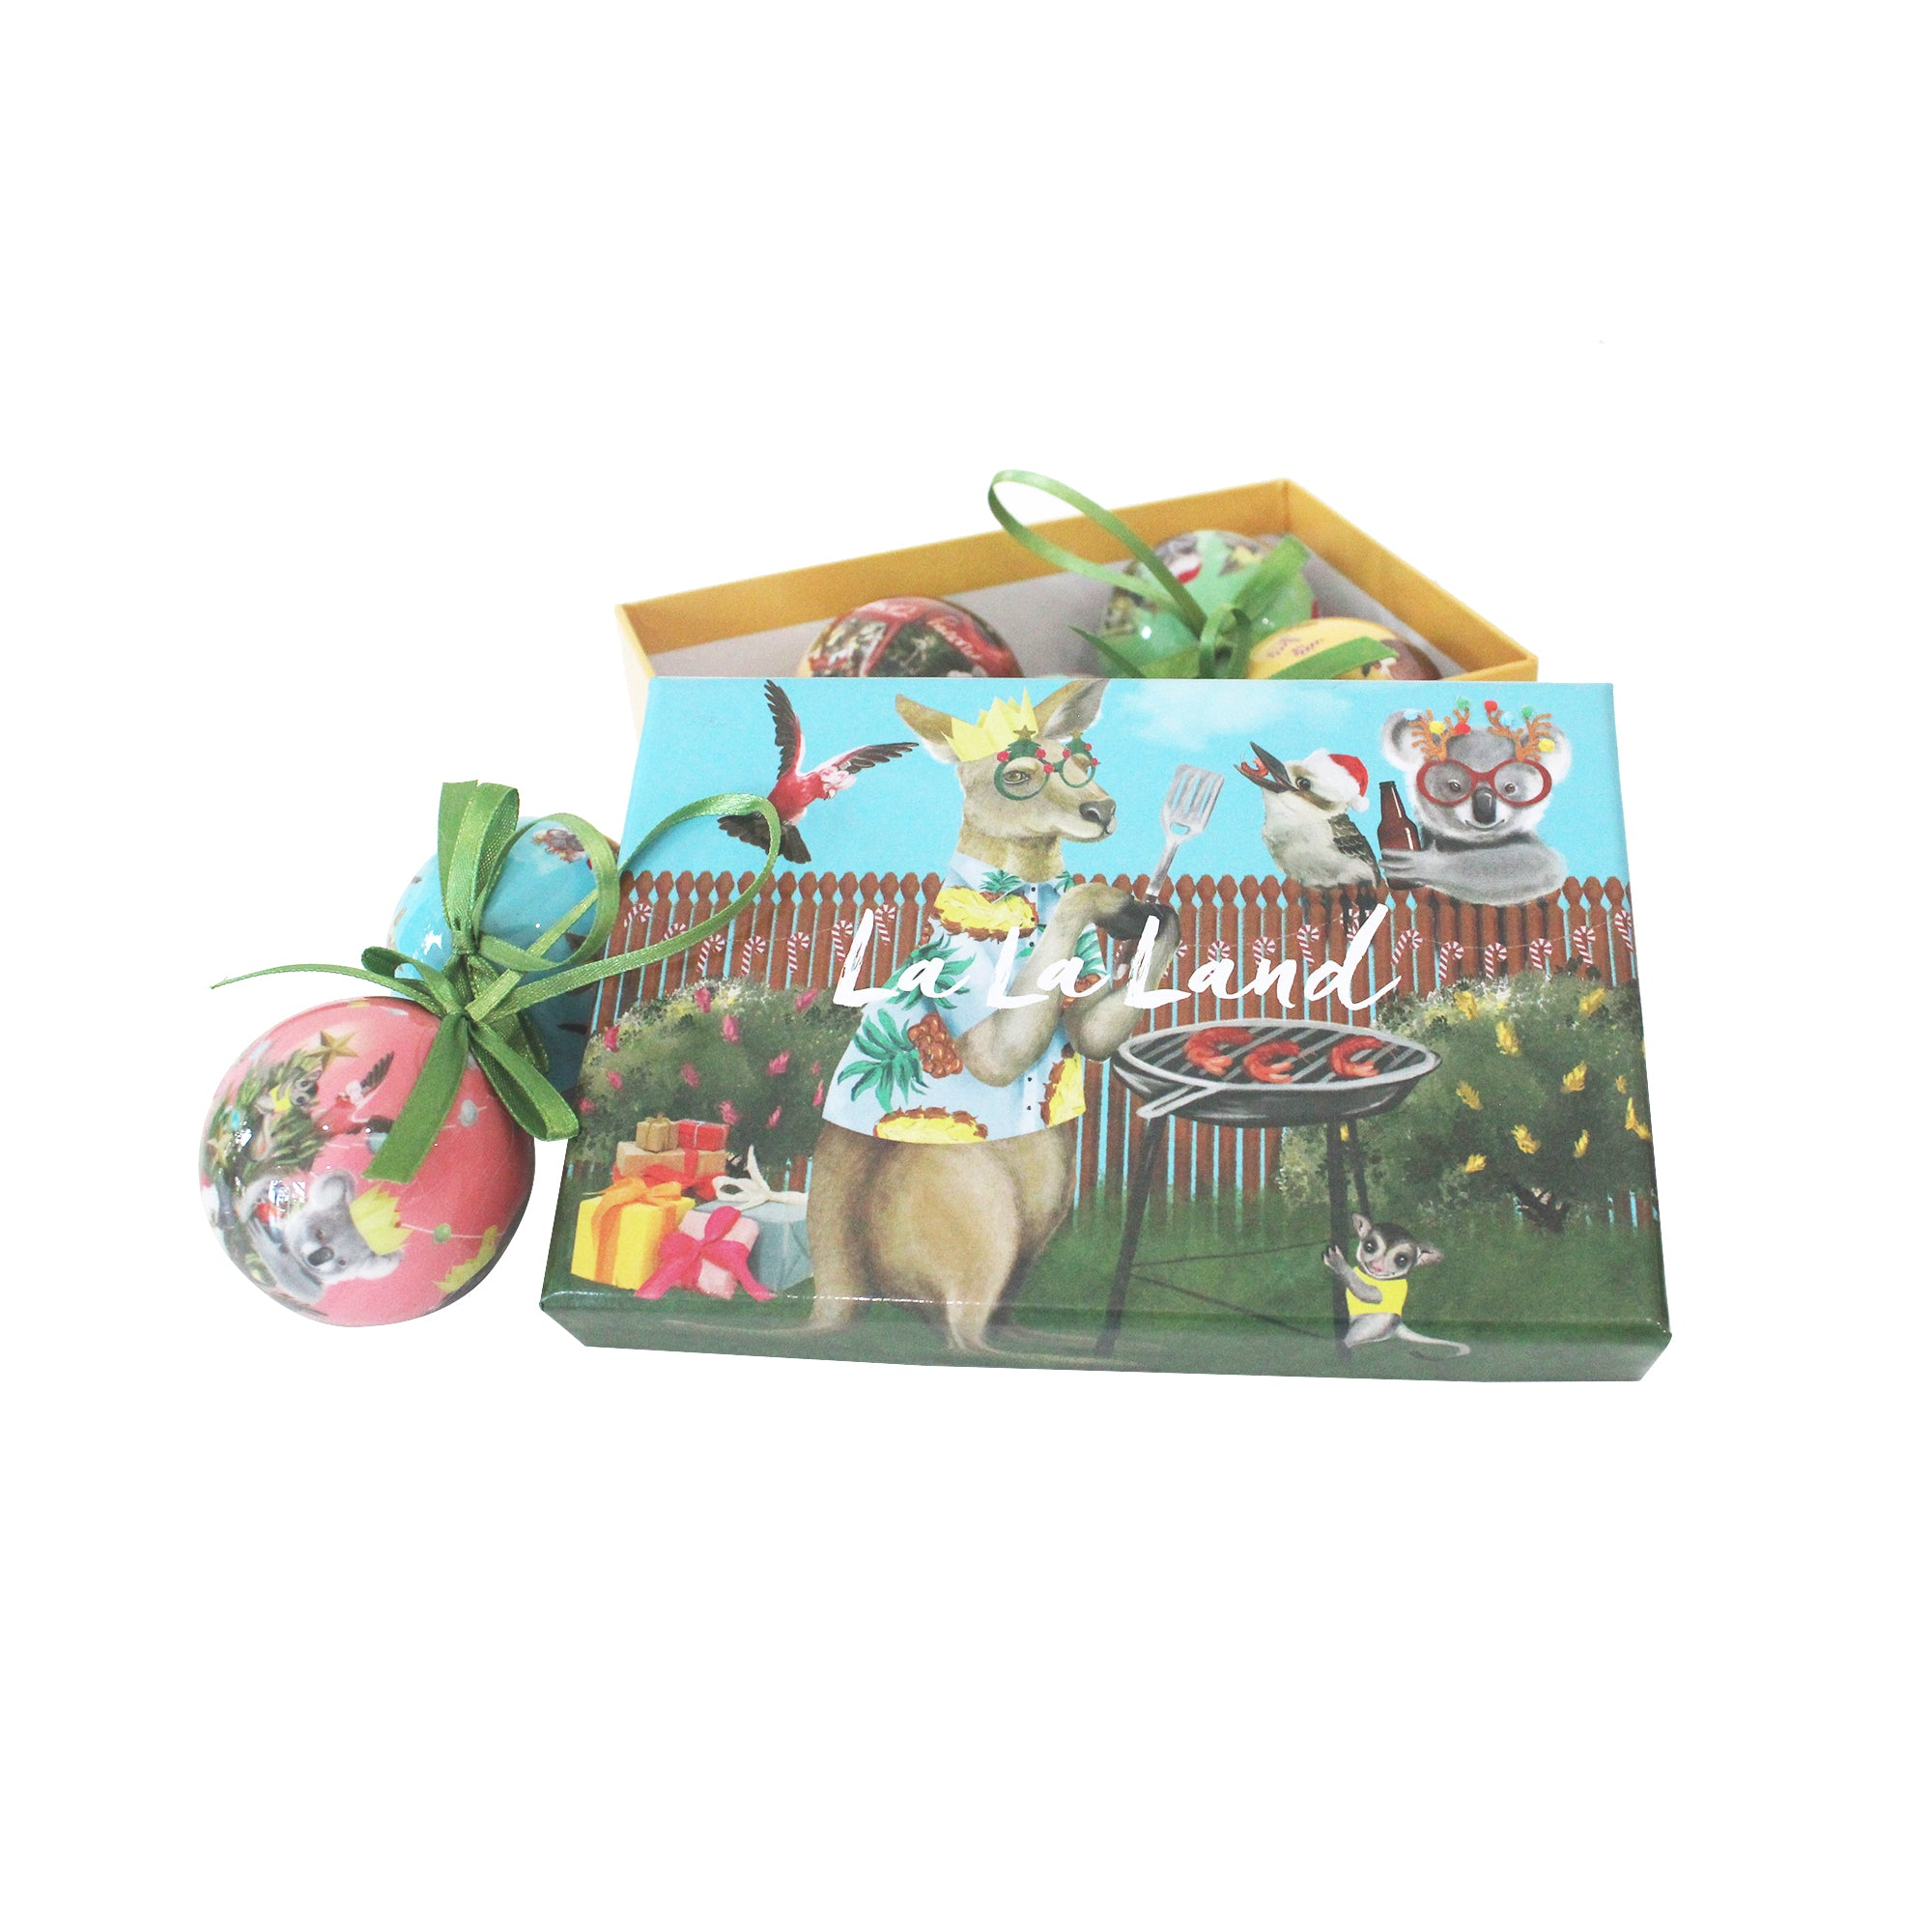 La La Land - Little Bauble Box Set - Festive Holidays